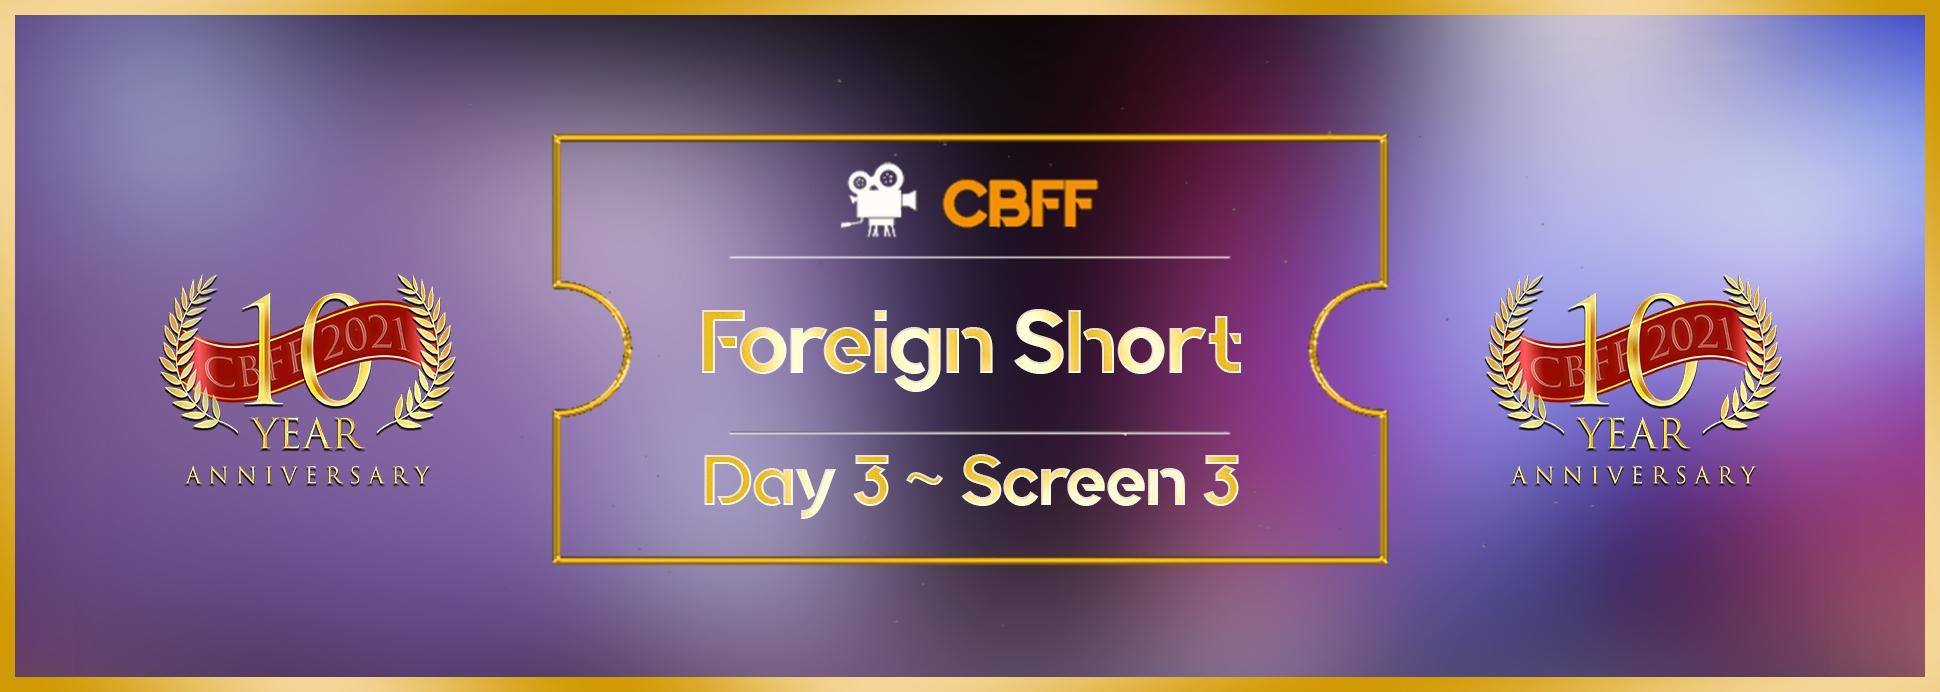 Day 3, Screen 3: Foreign Short